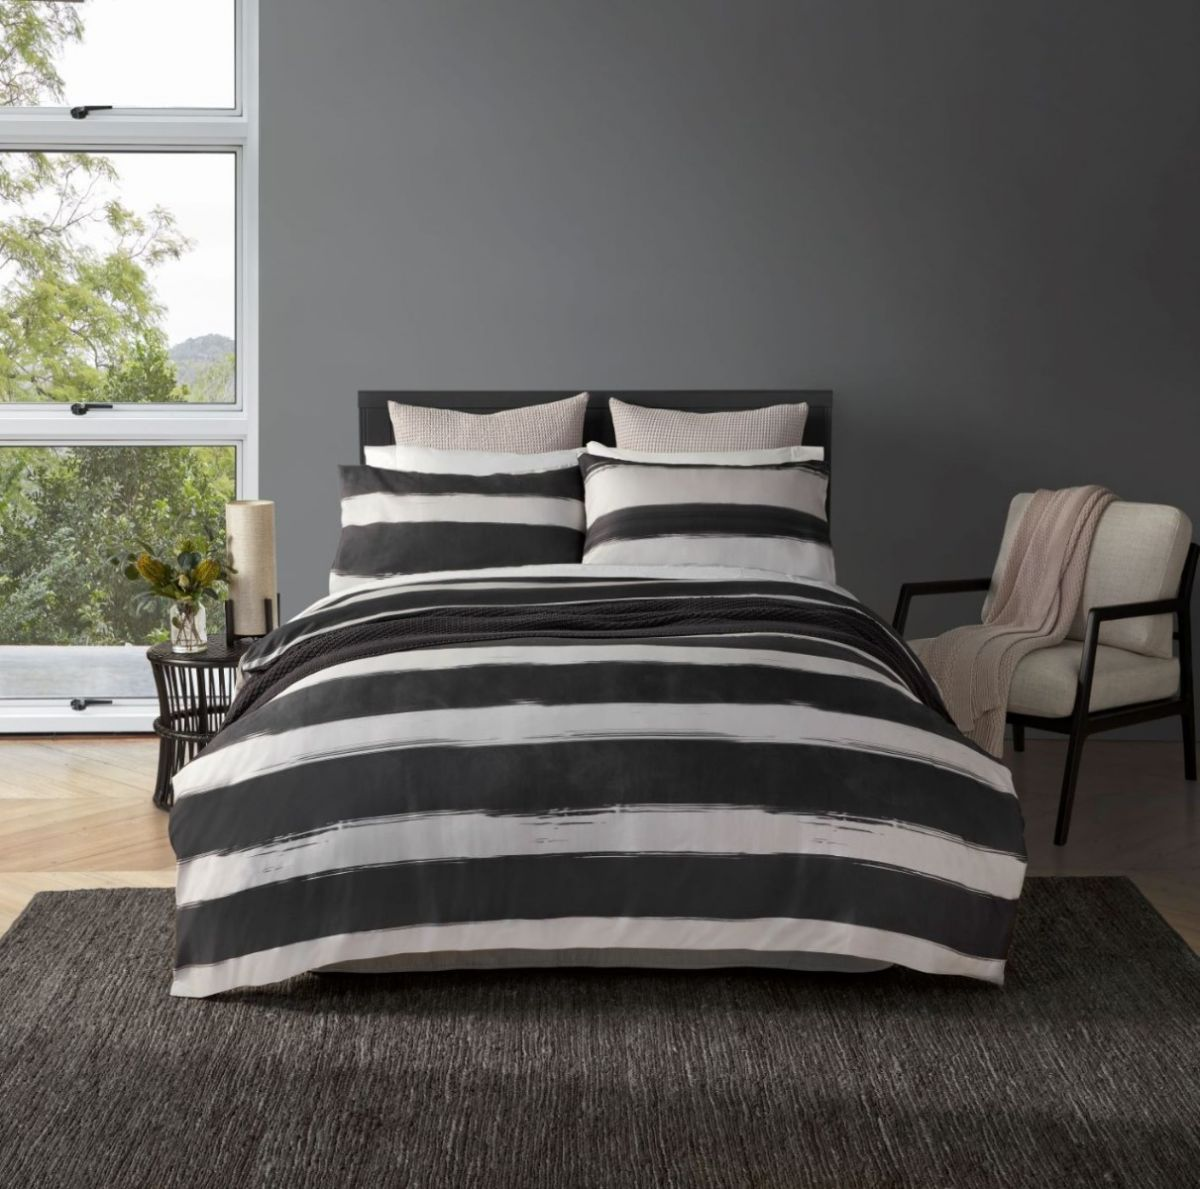 Fjord Duvet Cover Set